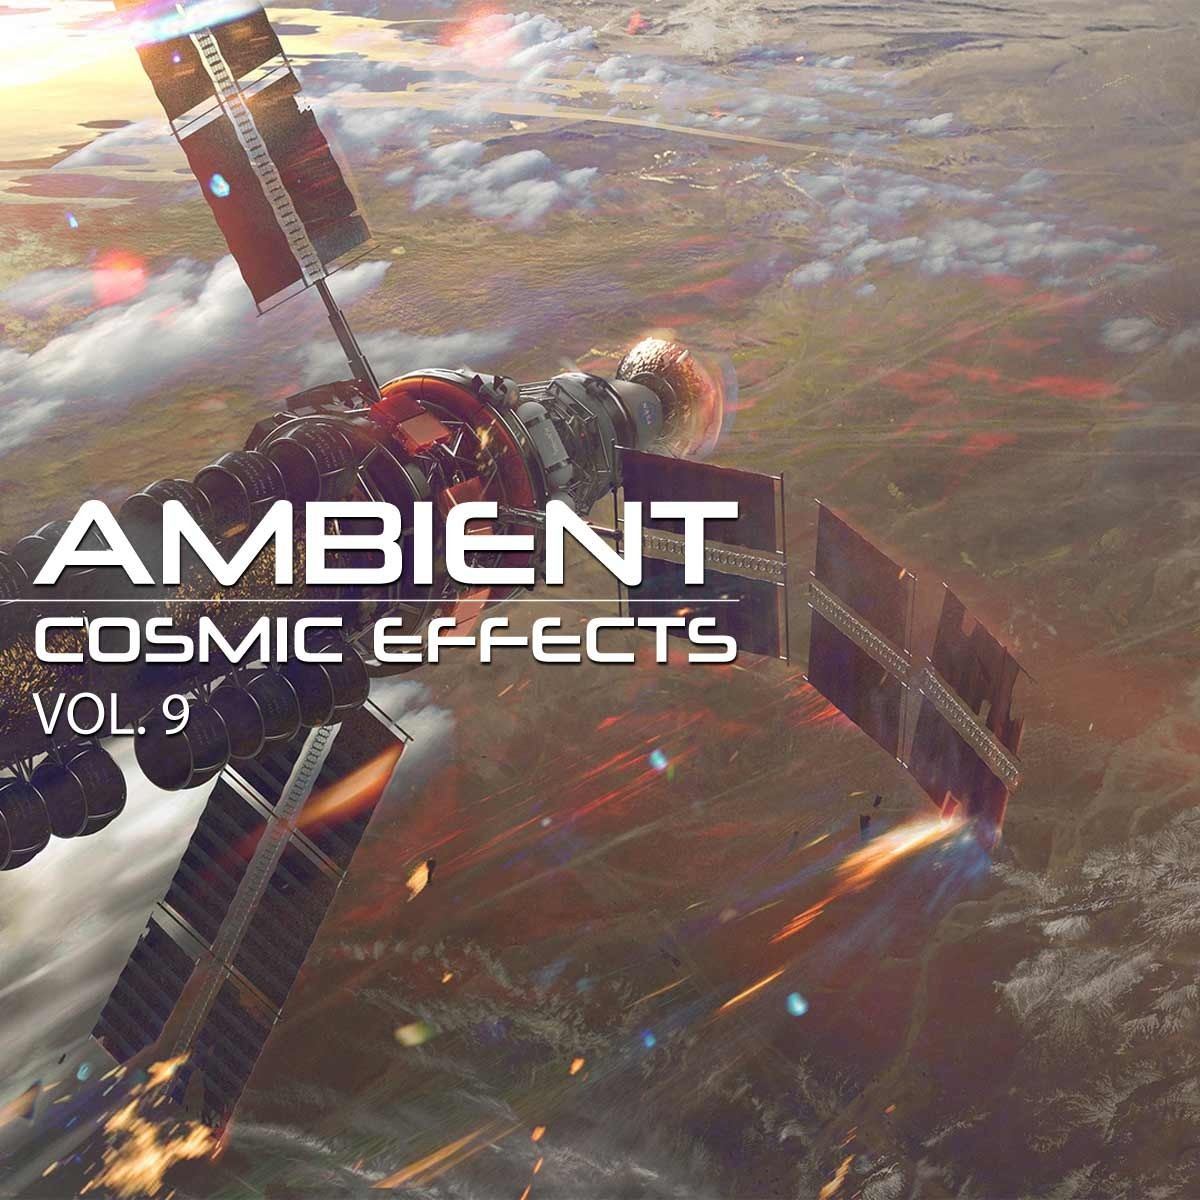 Ambient Cosmic Effects Vol 9